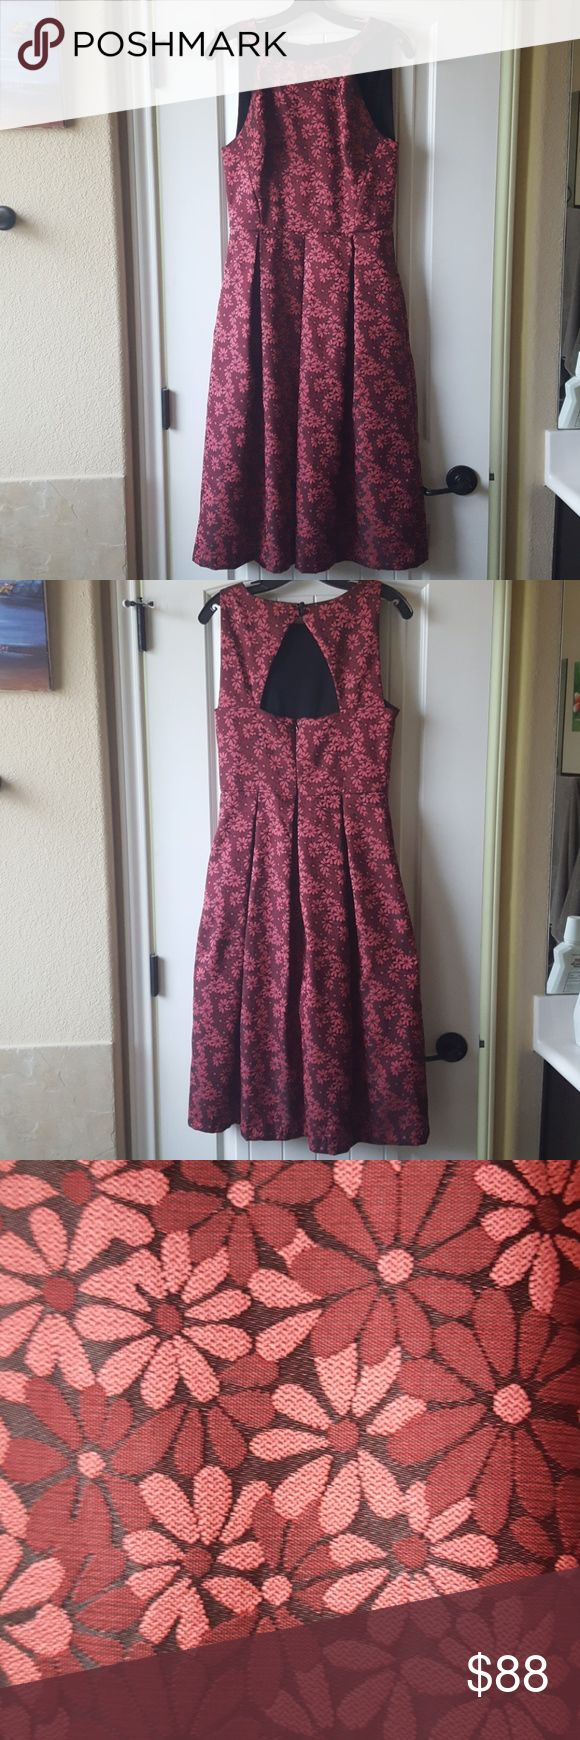 Eva Franco burgundy floral jacquard midi dress BEAUTIFUL DRESS! Worn once to a wedding. Fabric is not heavy but does have some stiffness to it. Color is maroon or burgundy with some black undertones. Has a bit of shine to it with flash photography. No flaws whatsoever. Make an offer! Eva Franco Dresses Midi